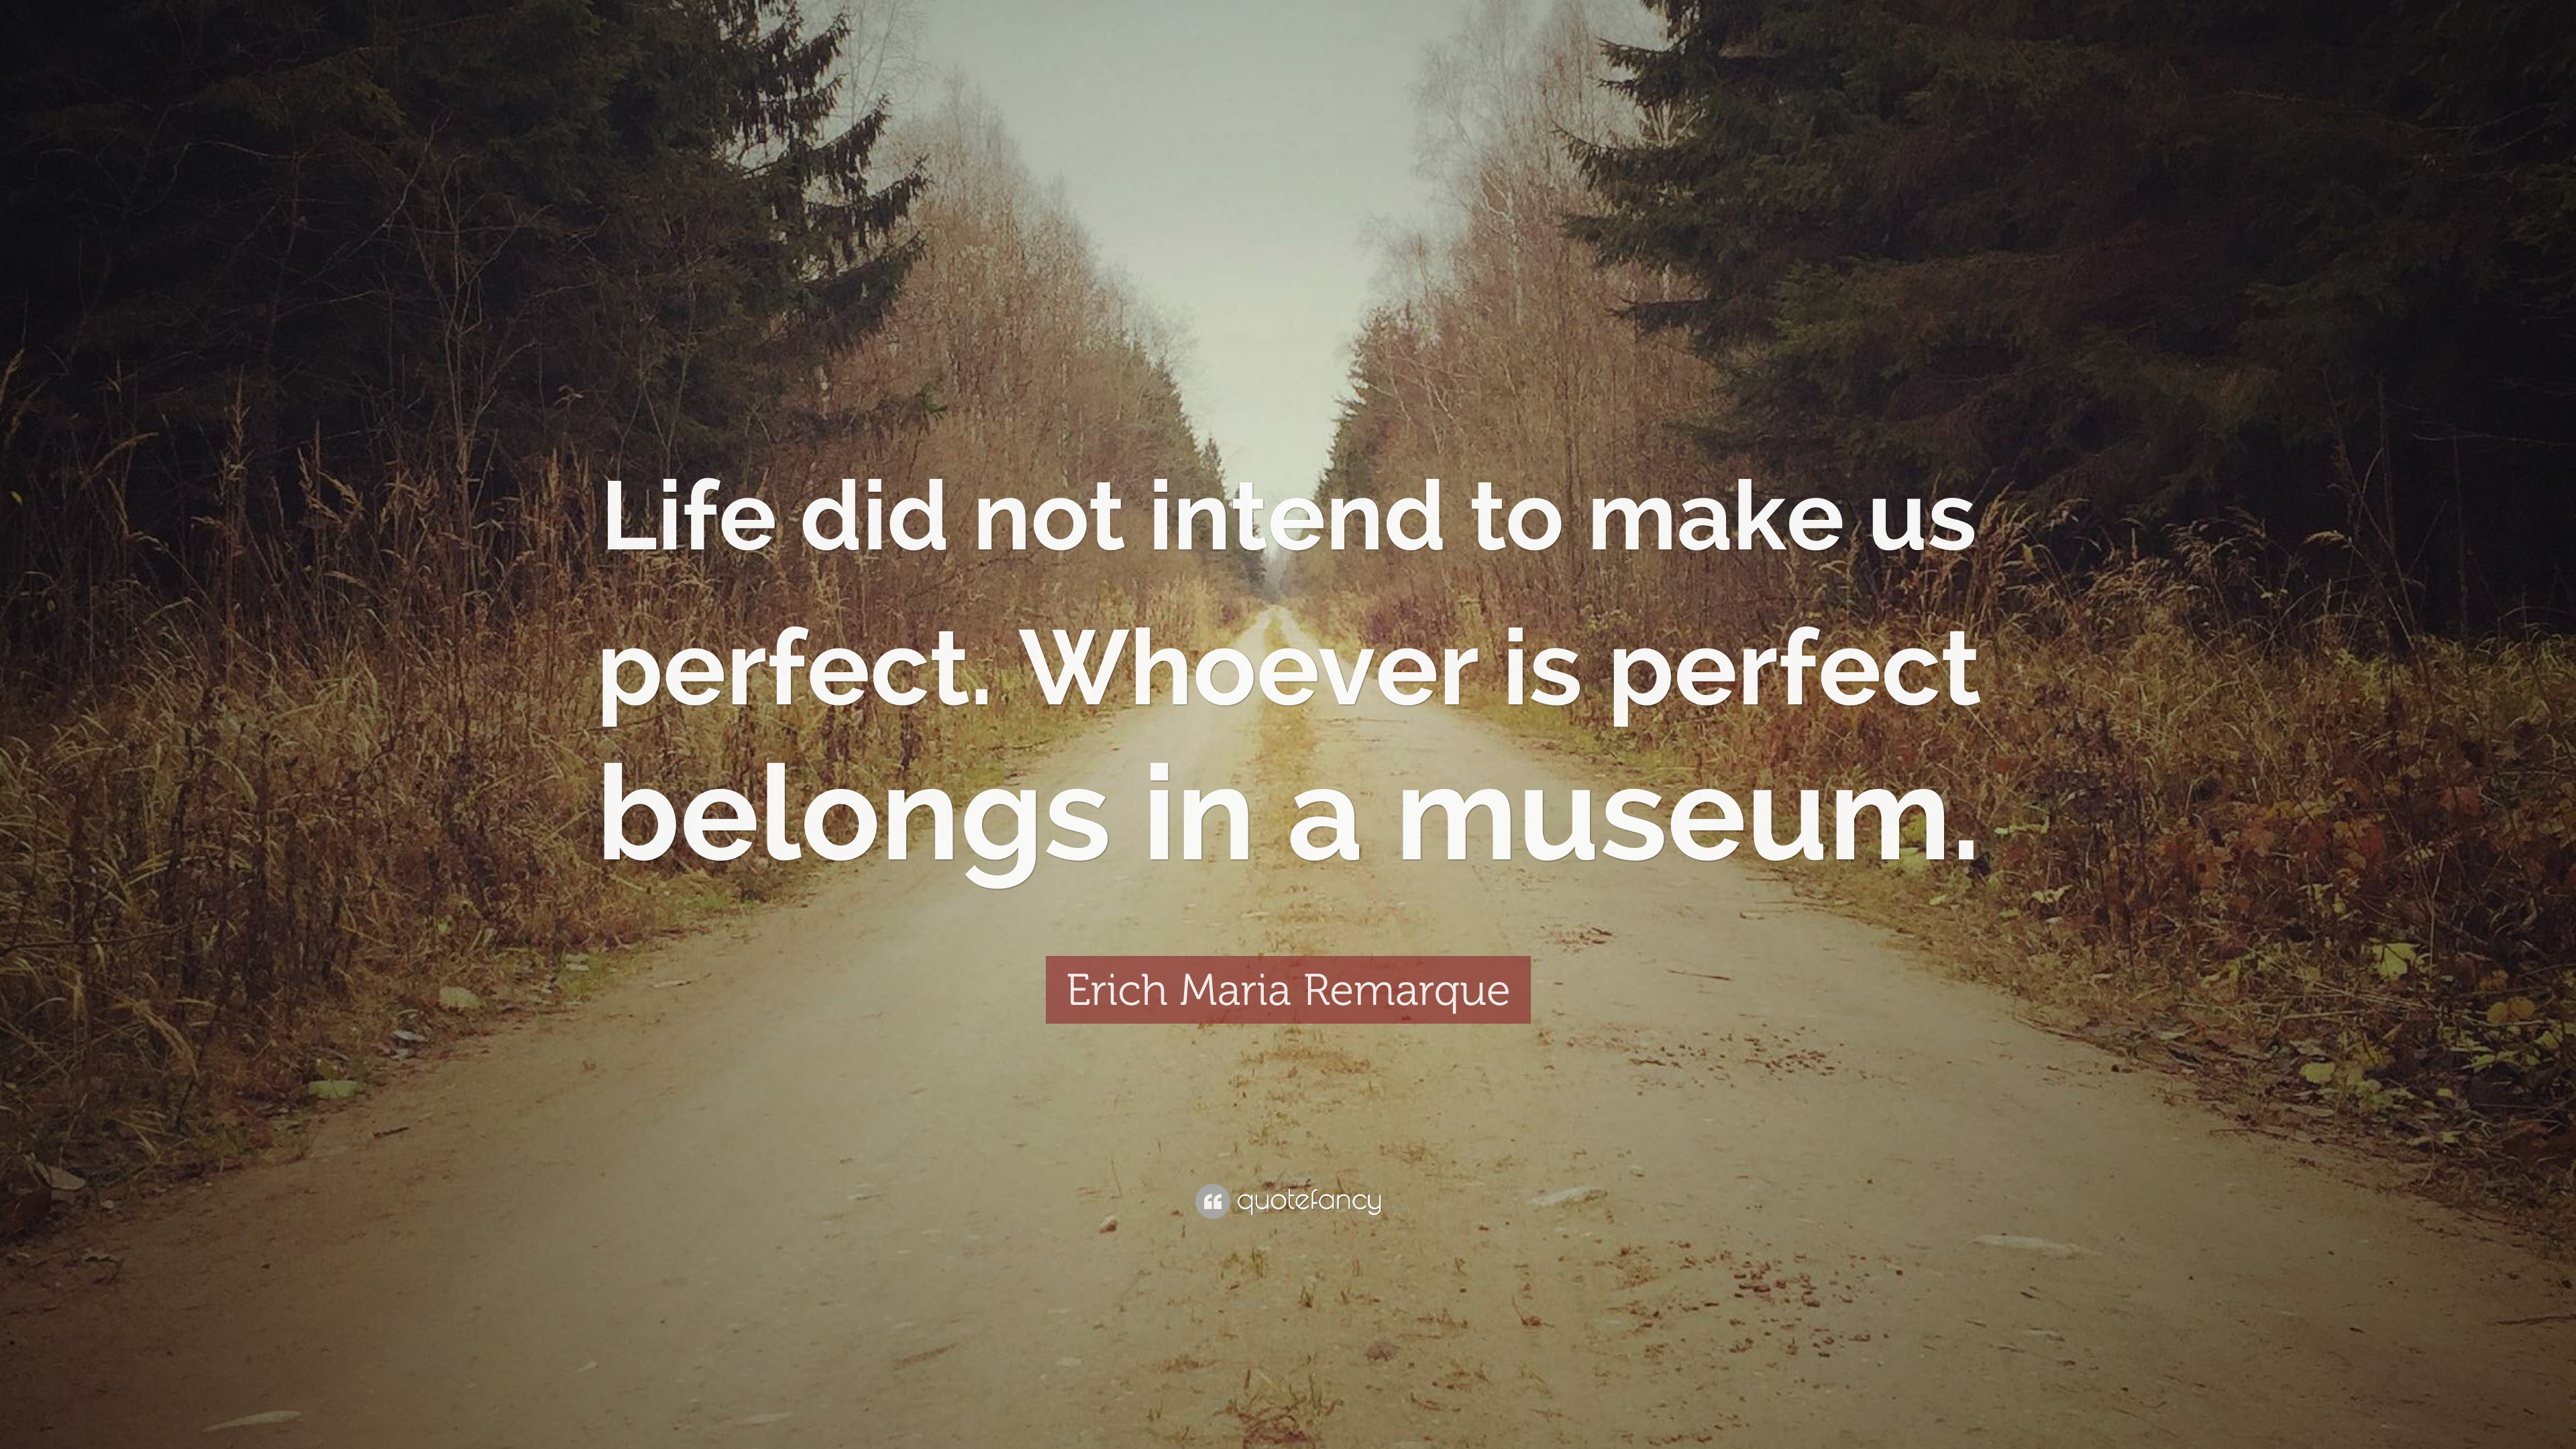 Erich Maria Remarque Quote: Life did not intend to make